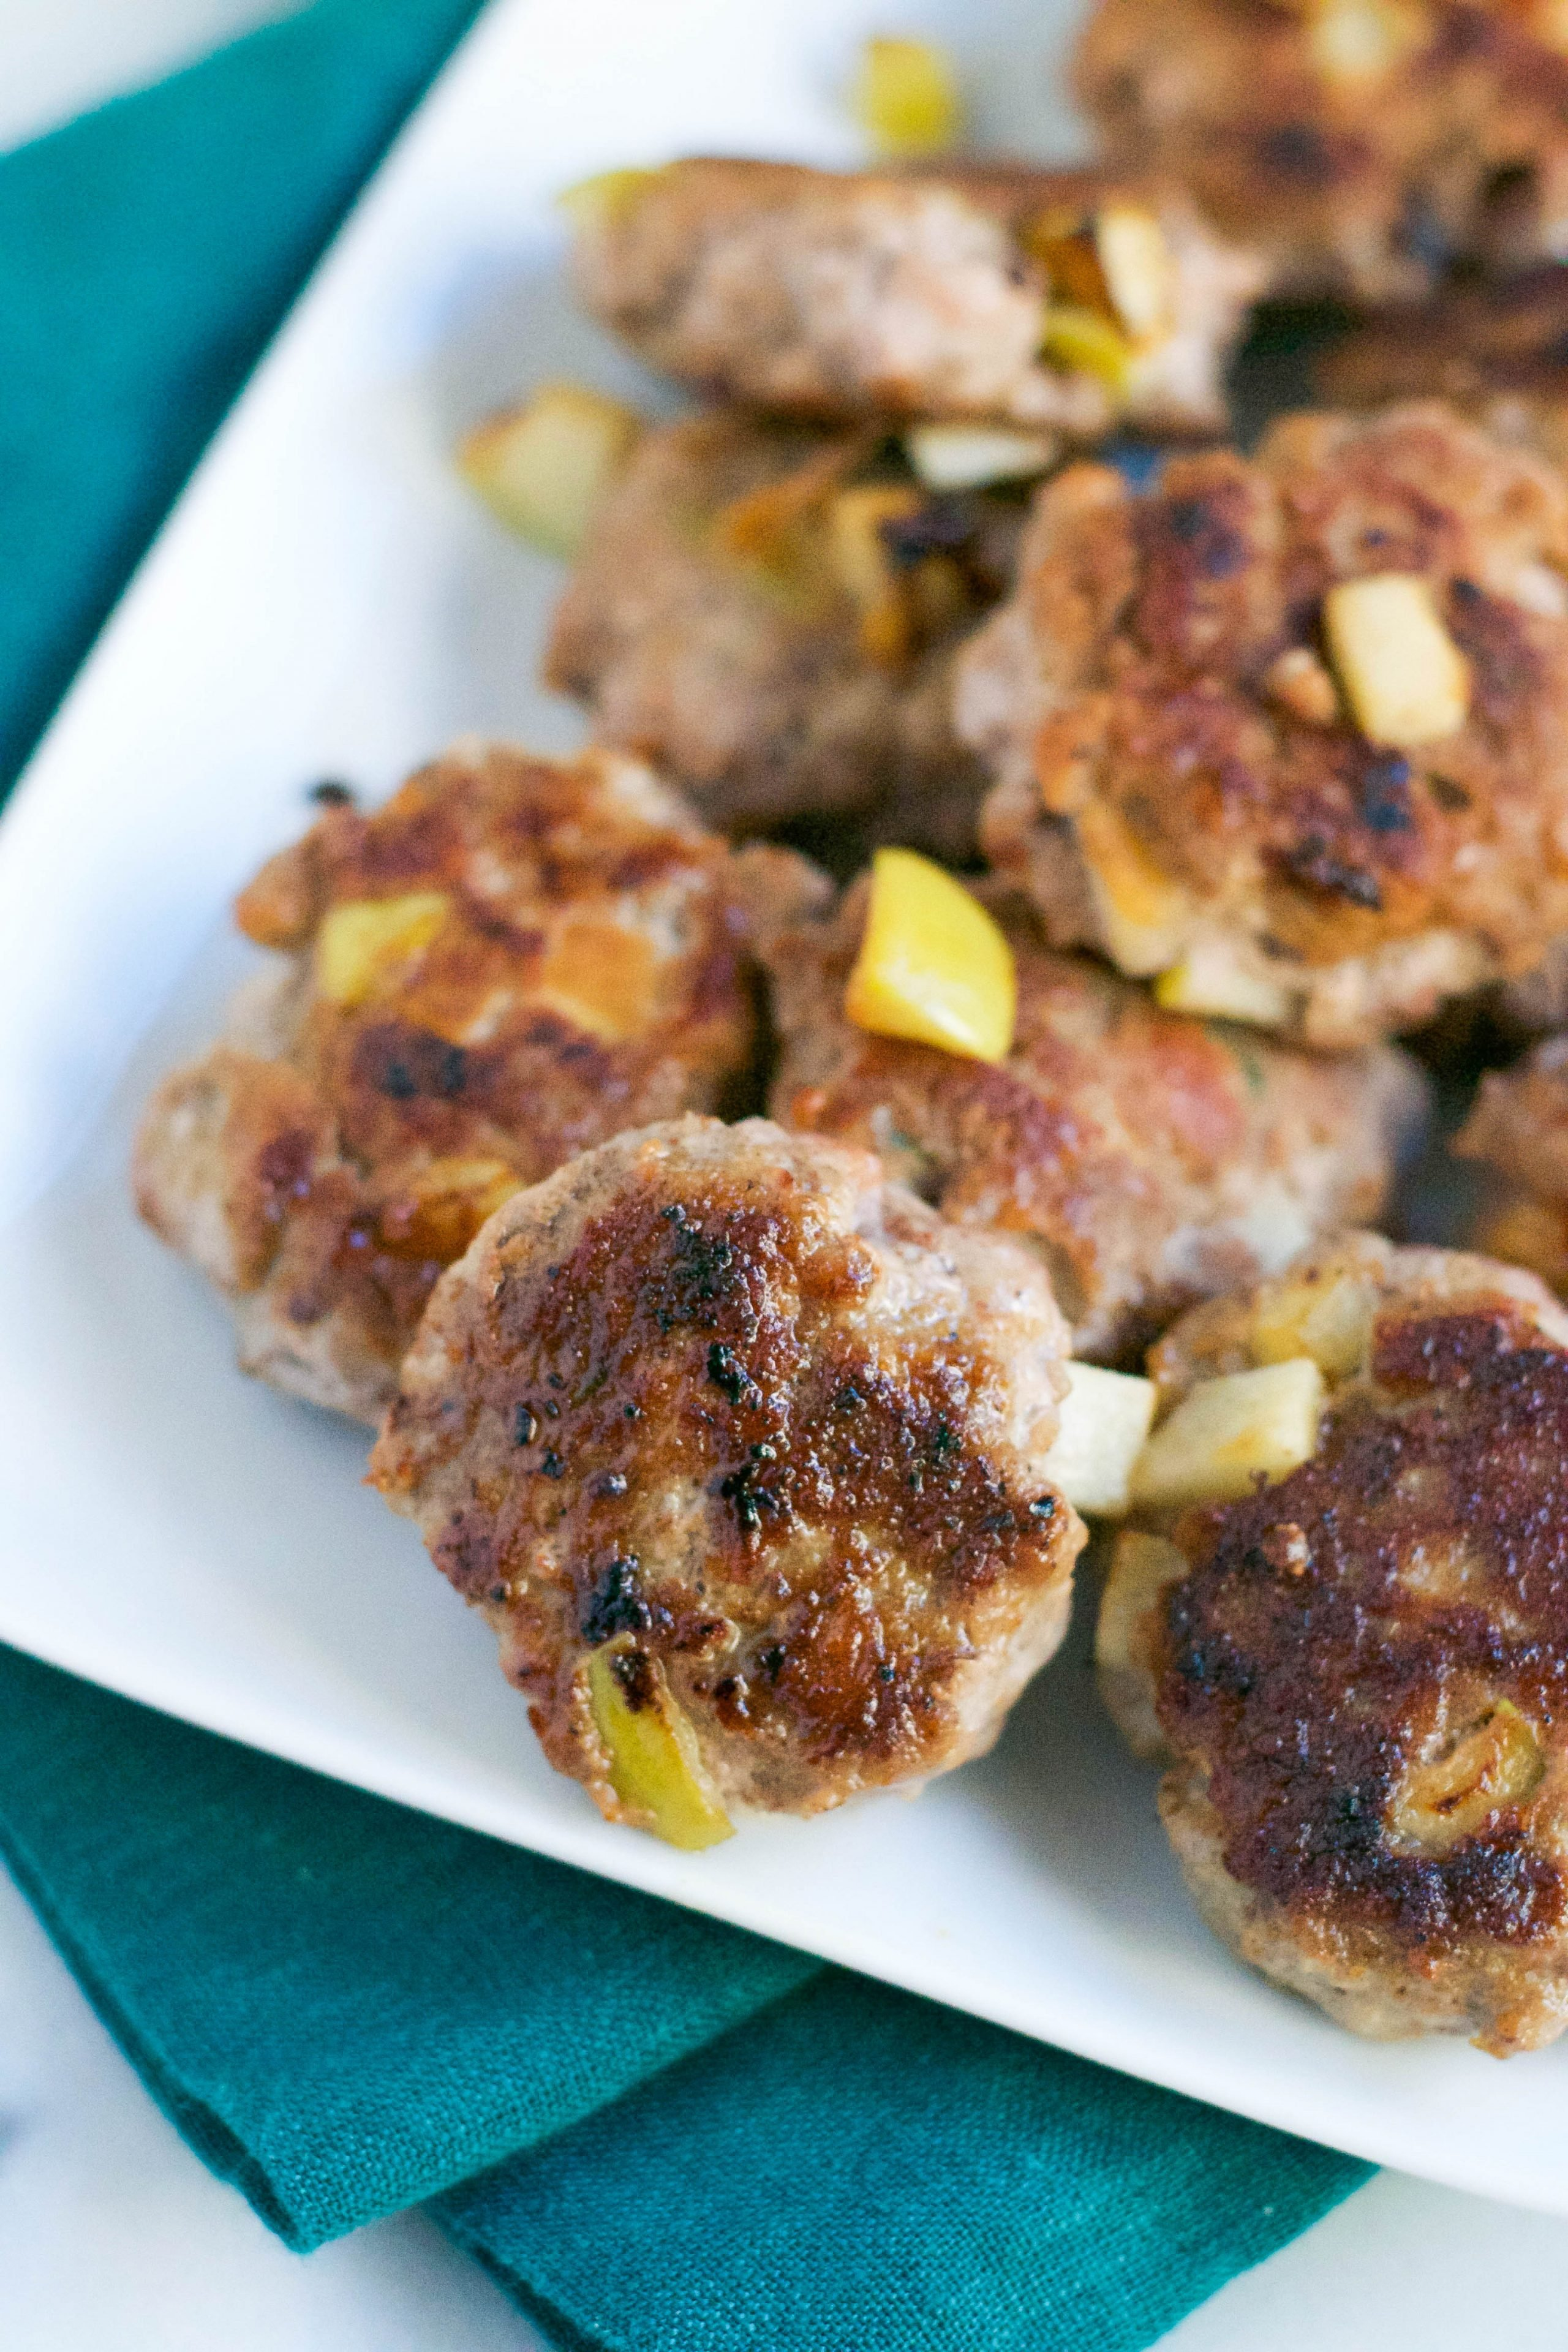 Apple Turkey Breakfast Sausage (GF, DF) - A Dash of Megnut